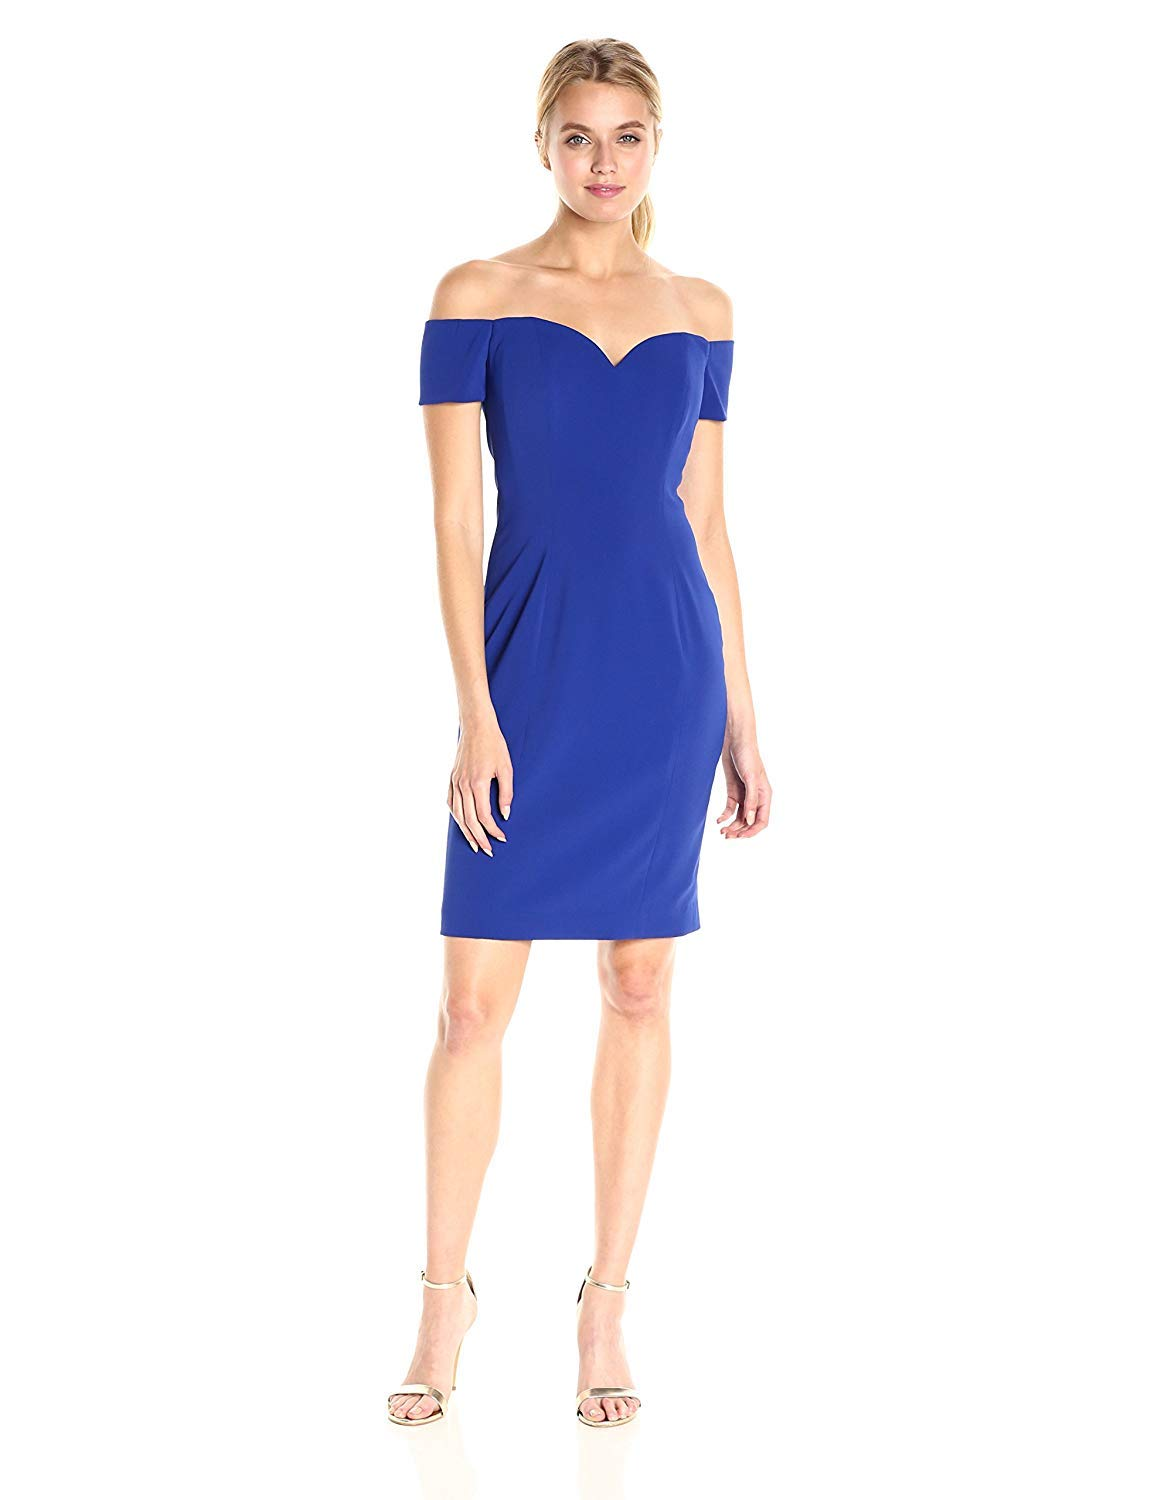 Available at Amazon: Badgley Mischka Women's Short Off The Shoulder Dress